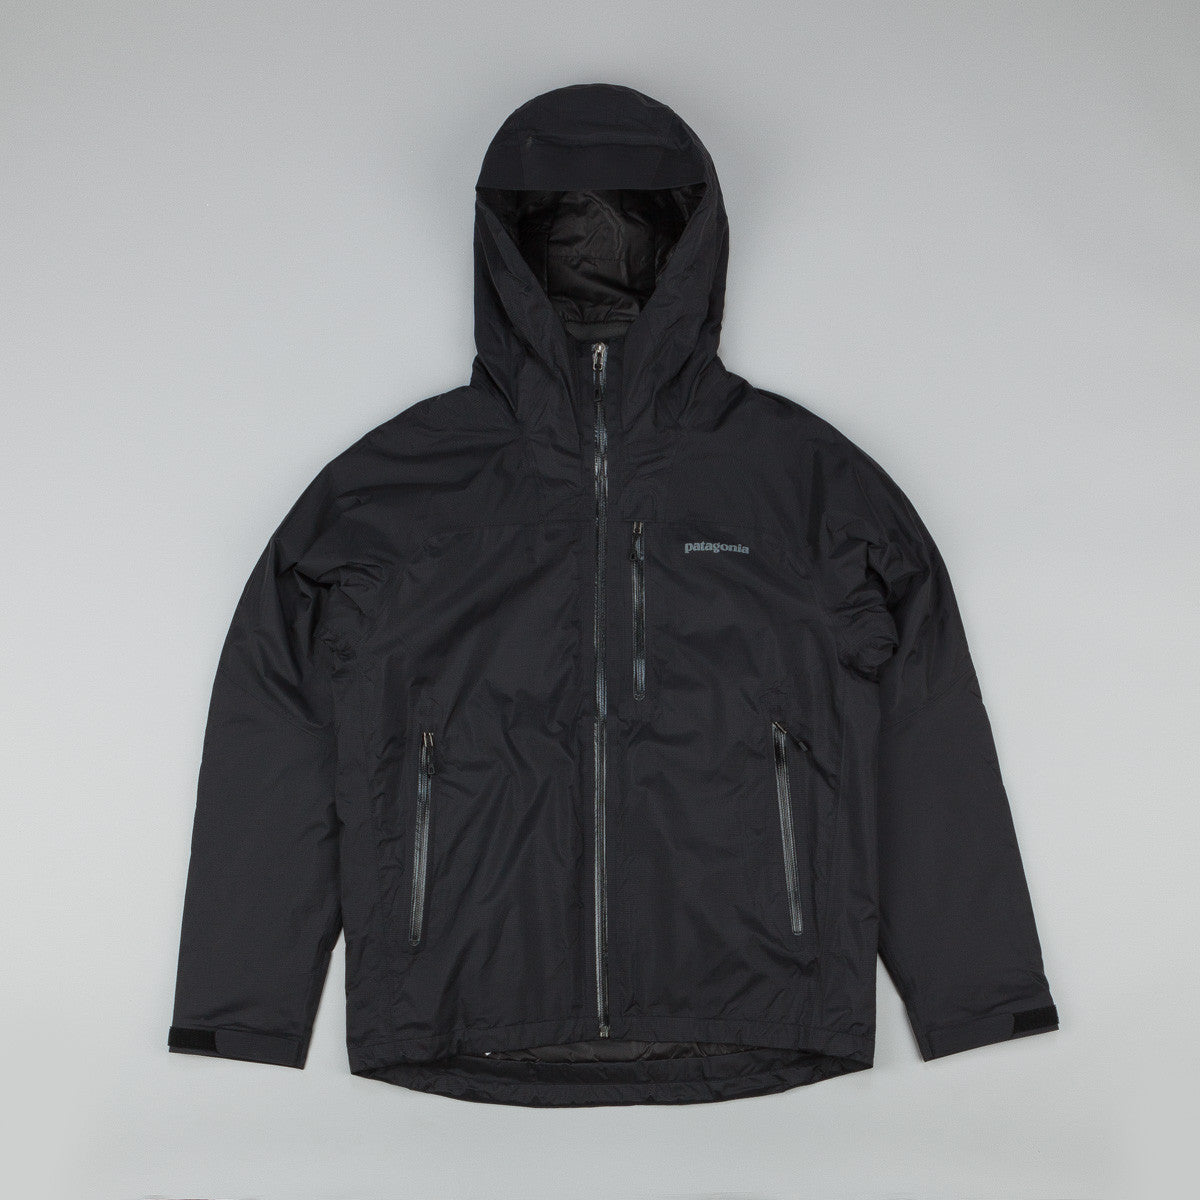 Patagonia Insulated Torrent Shell Jacket